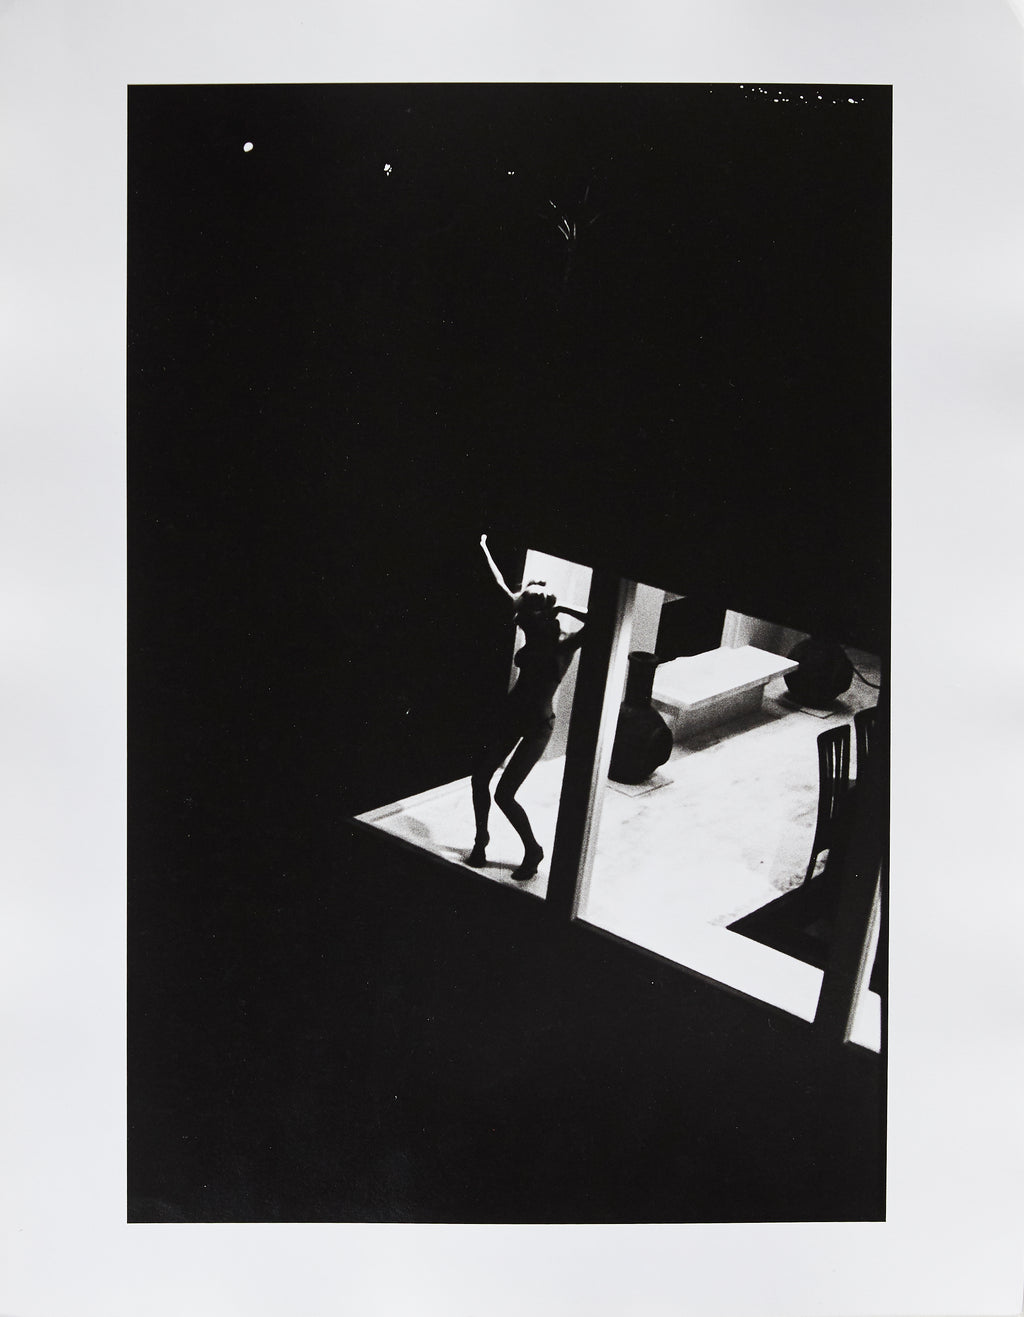 Ingrid Seynhaeve dancing in window #3 - Original Photo Print by Dewey Nicks